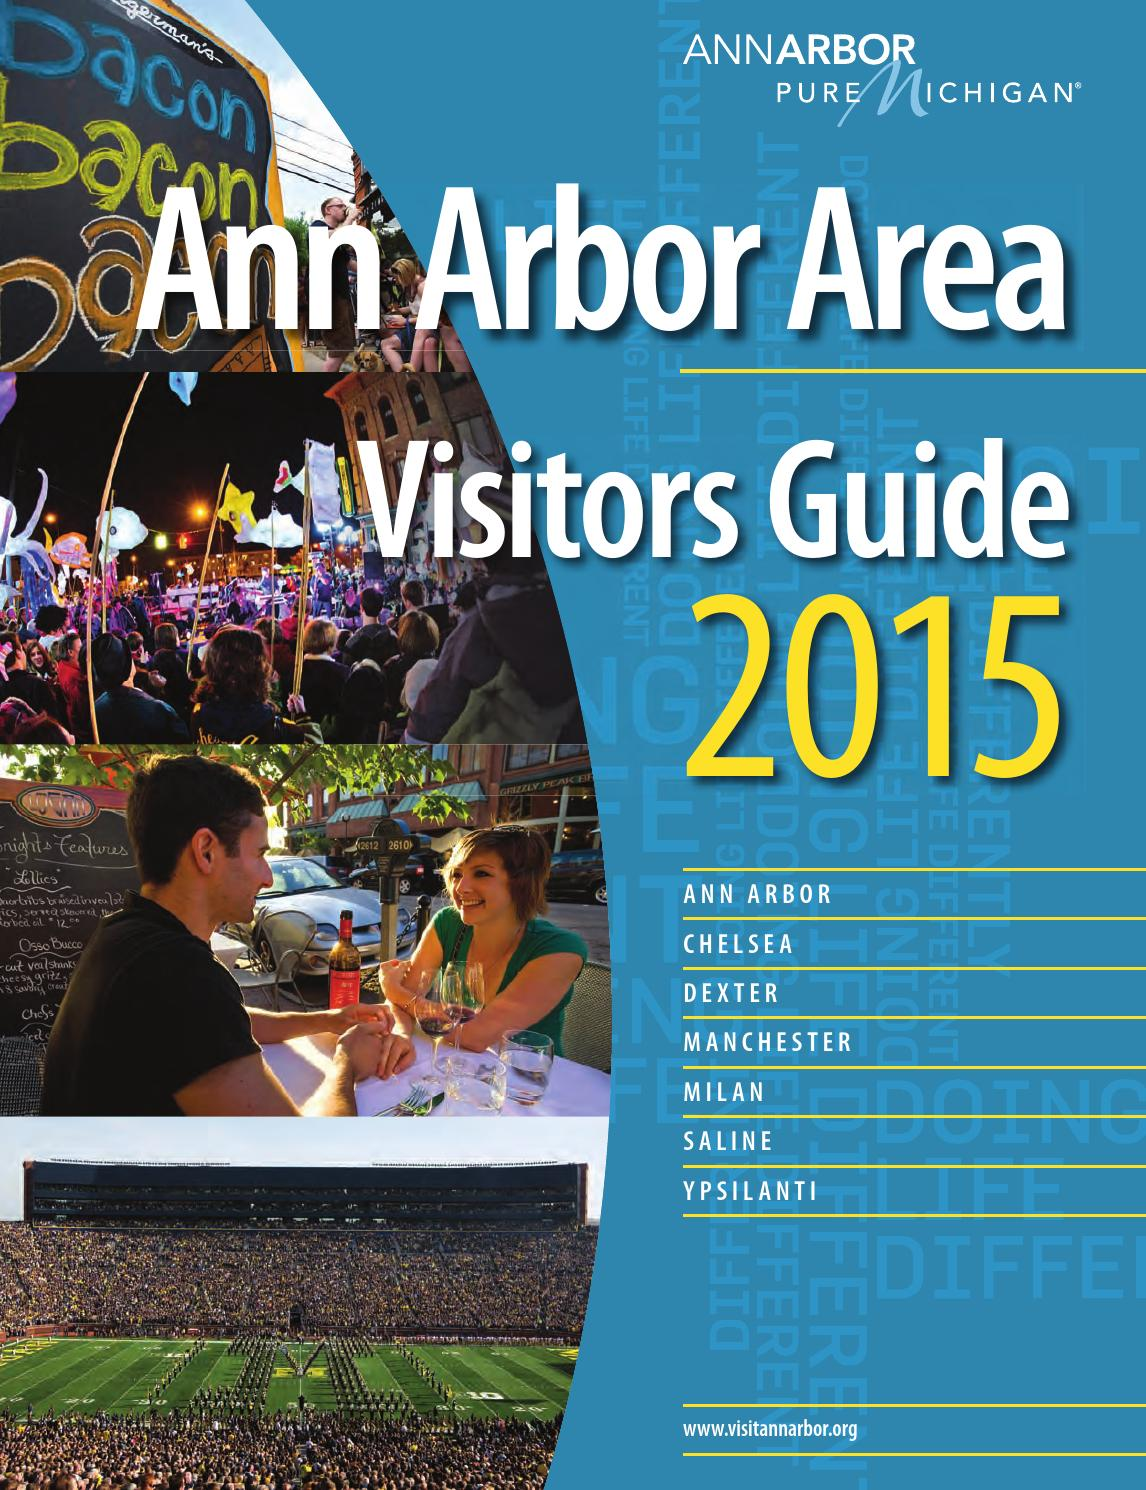 2015 Ann Arbor Area Visitors Guide by Cory Hamlin - issuu